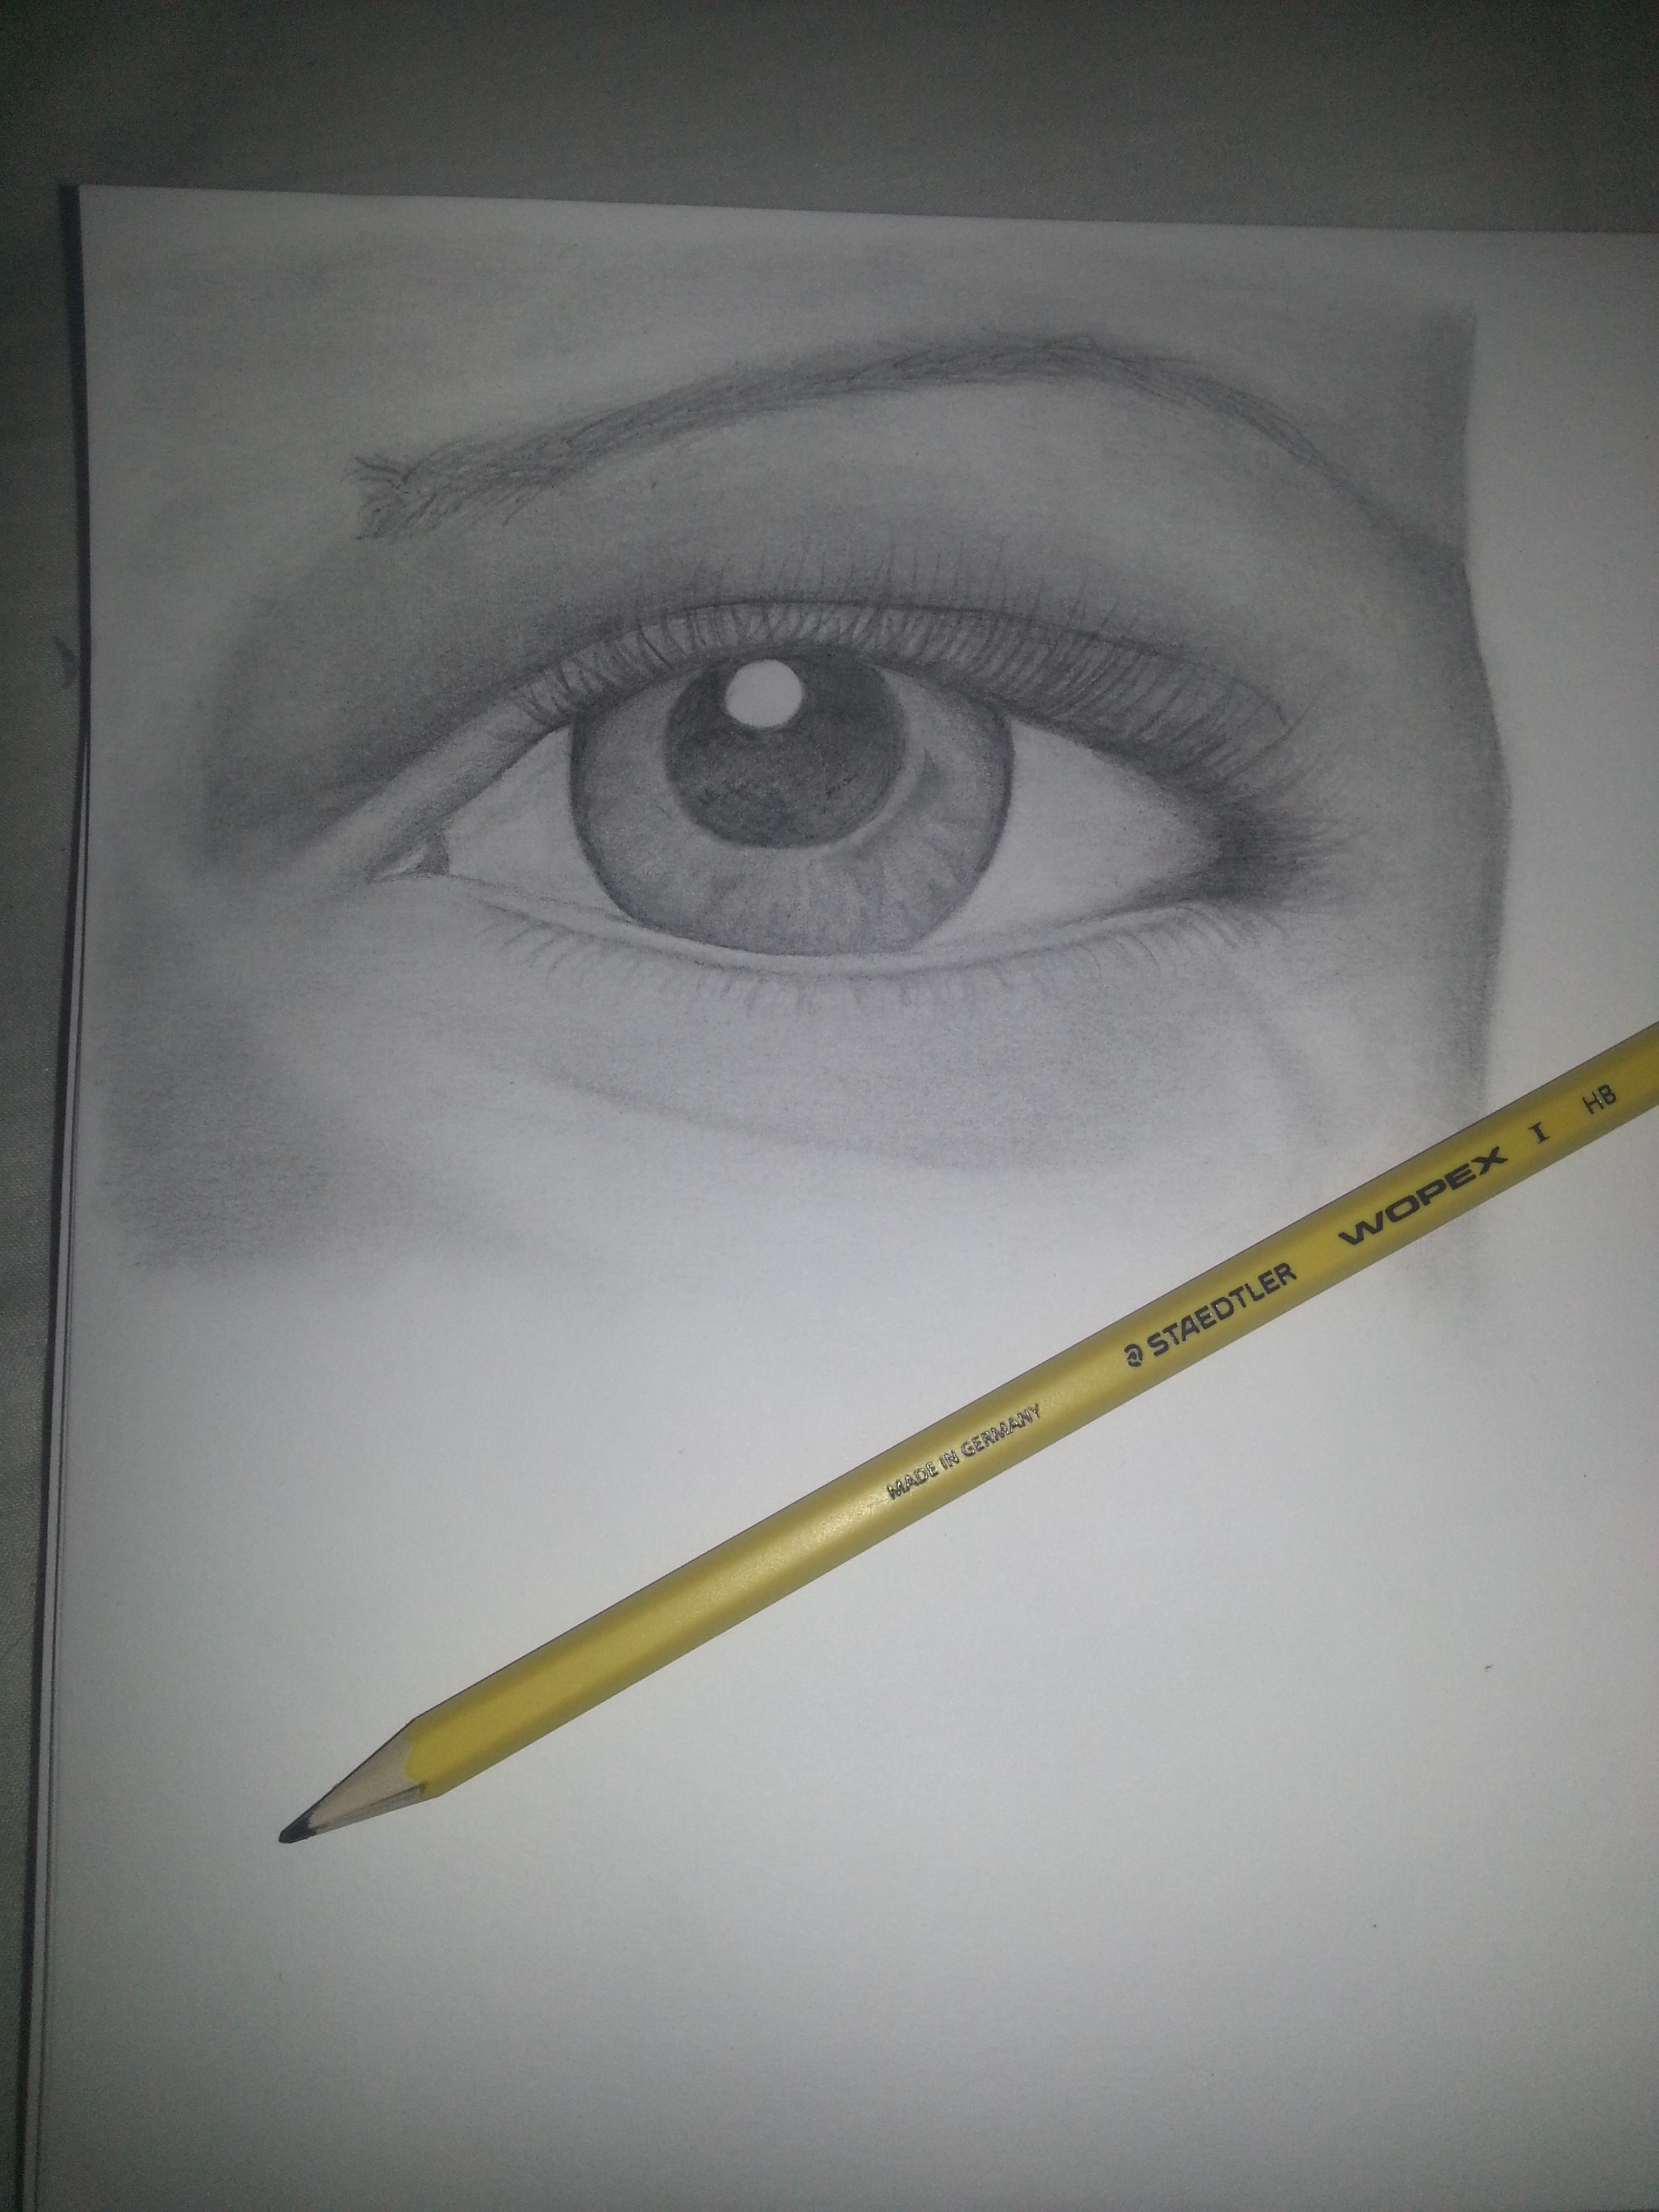 Hb pencil drawing of eye art ideas eye pencil drawing pencil